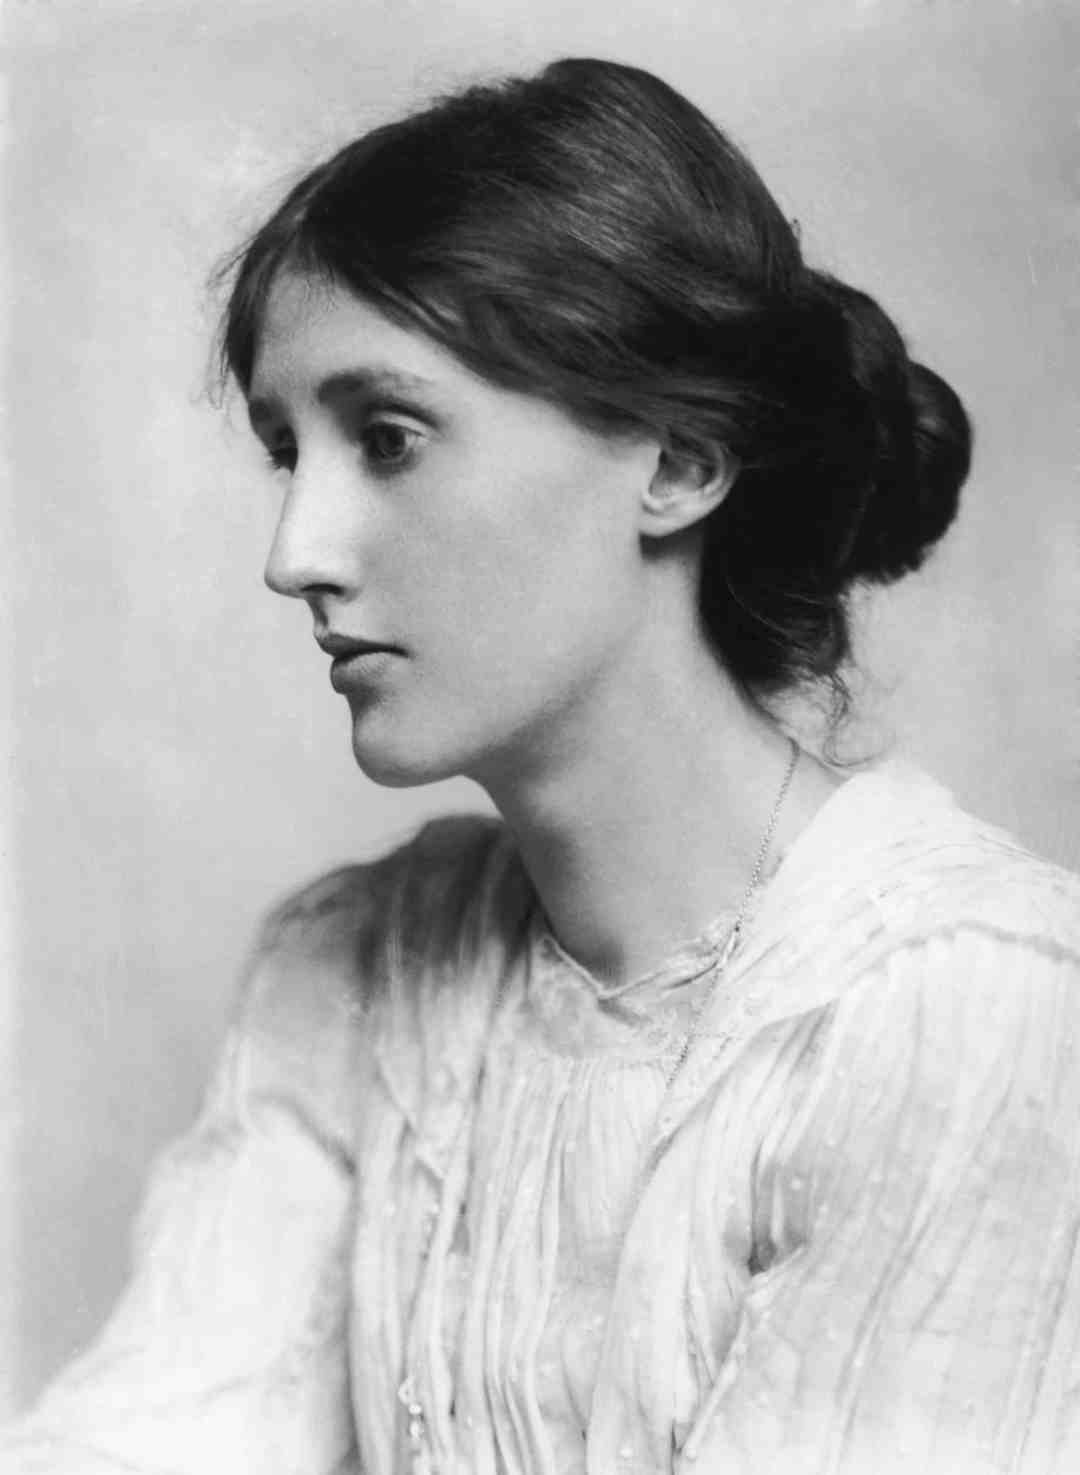 Virginia Woolf (1882 - 1941), 1902. (Photo by George C. Beresford/Hulton Archive/Getty Images)